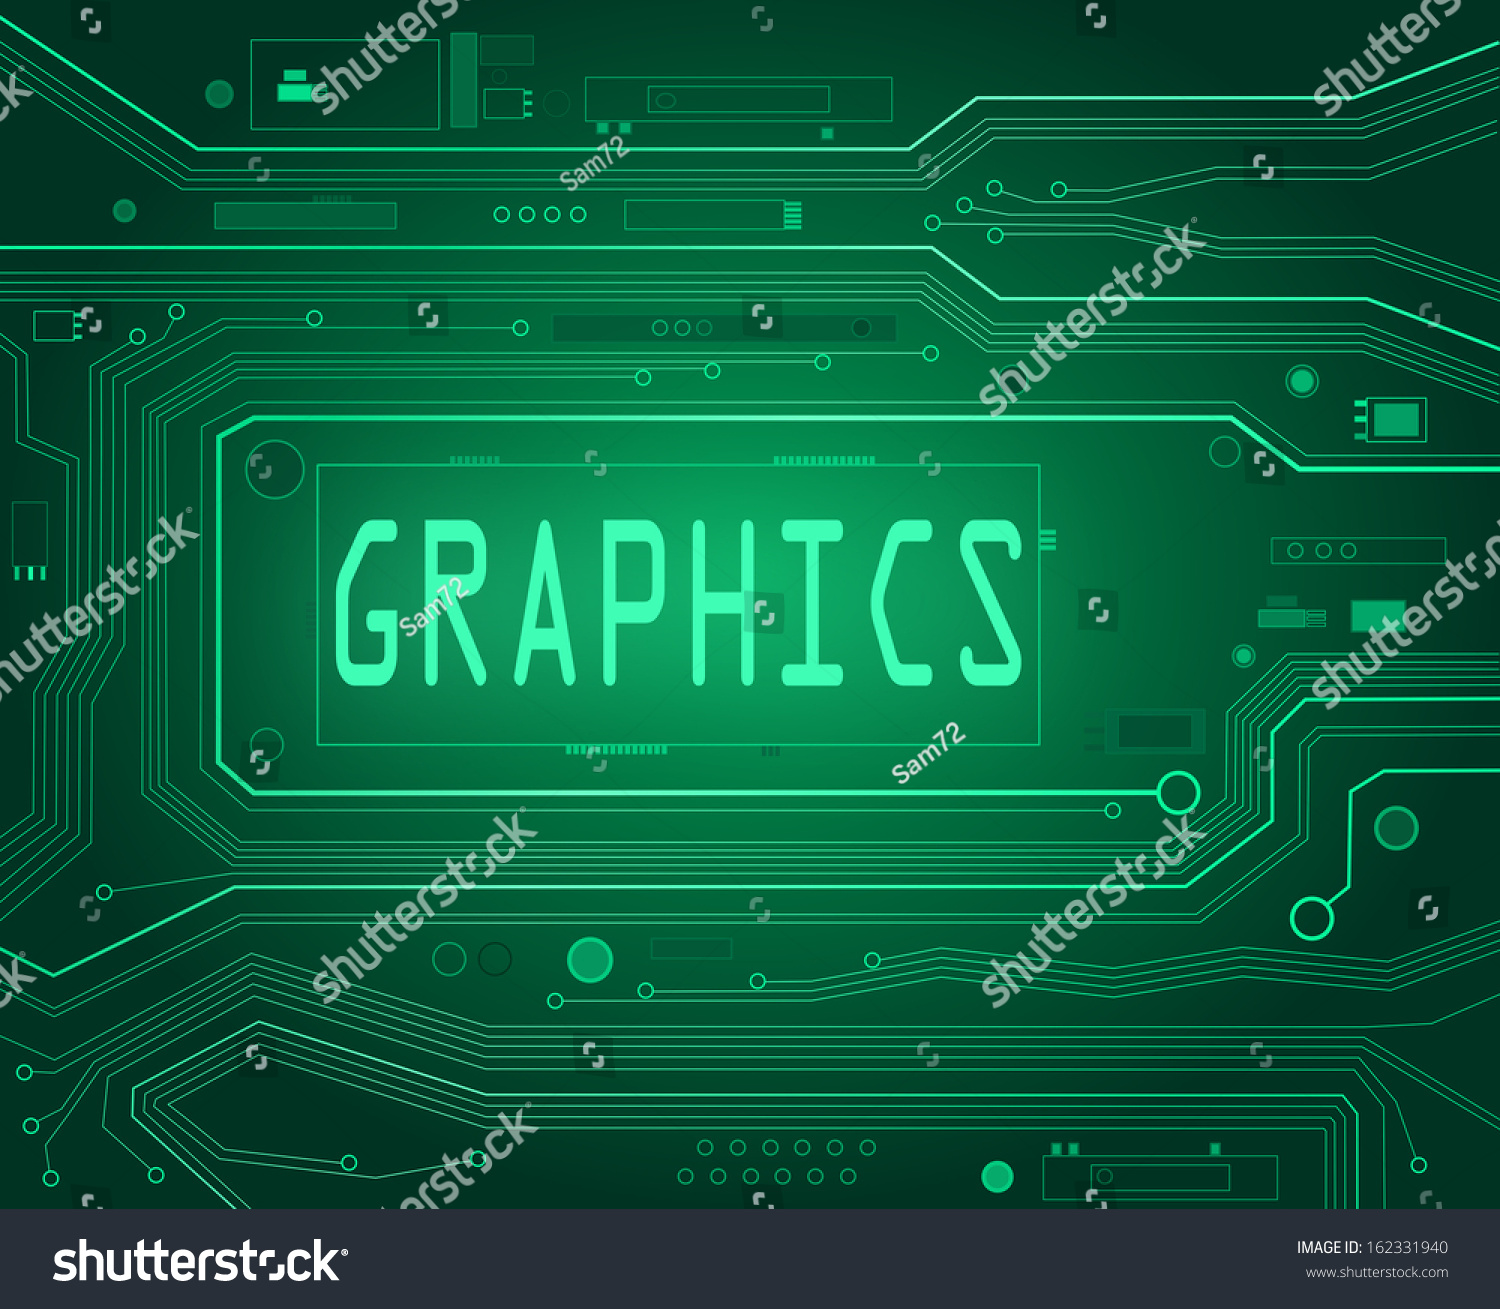 Funky Circuit Board Graphics Crest - Electrical and Wiring Diagram ...